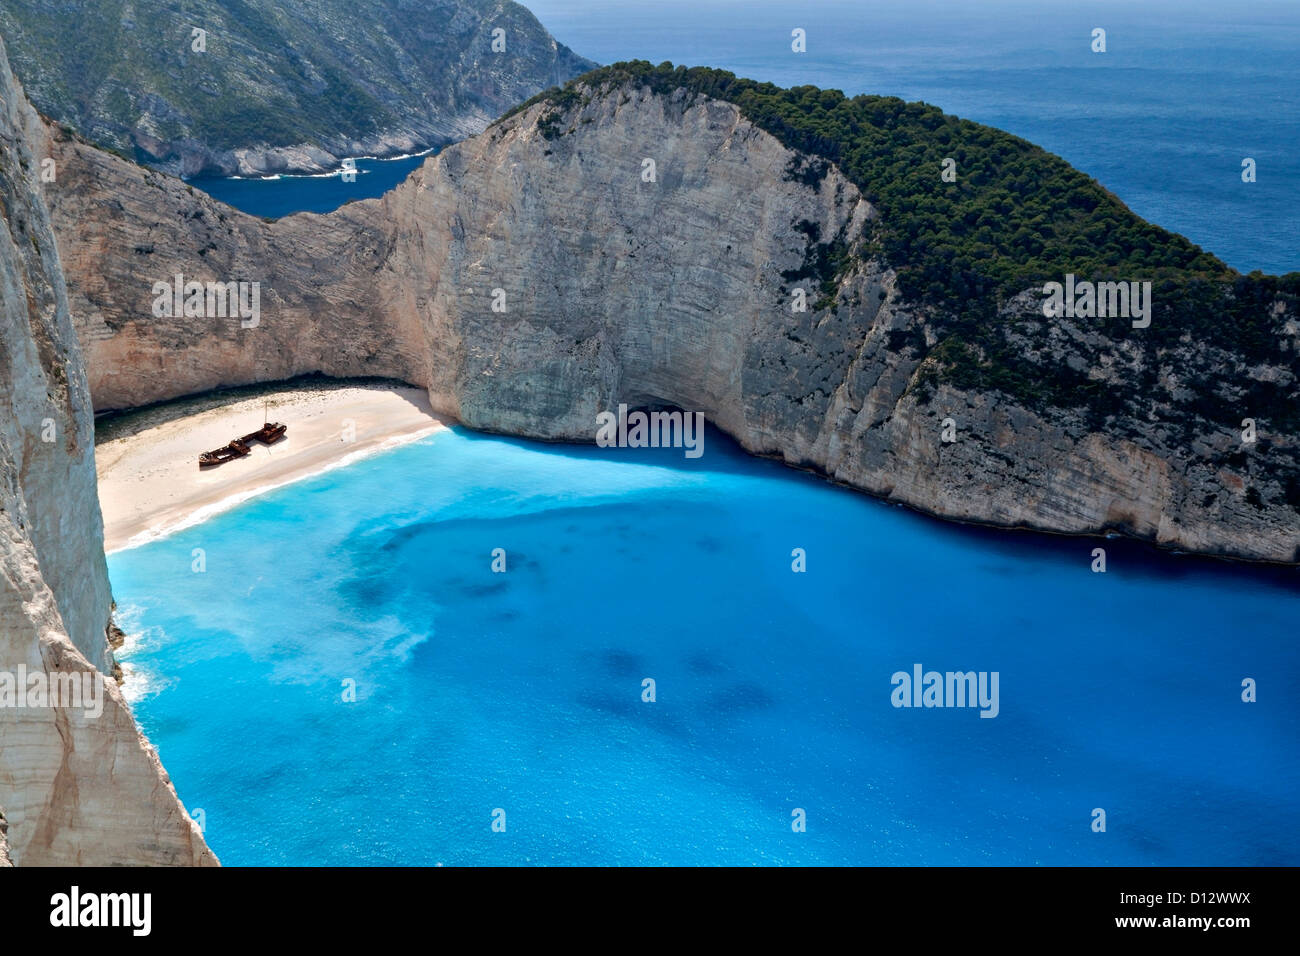 navagio strand in zakynthos insel in griechenland stockfoto bild 52309990 alamy. Black Bedroom Furniture Sets. Home Design Ideas